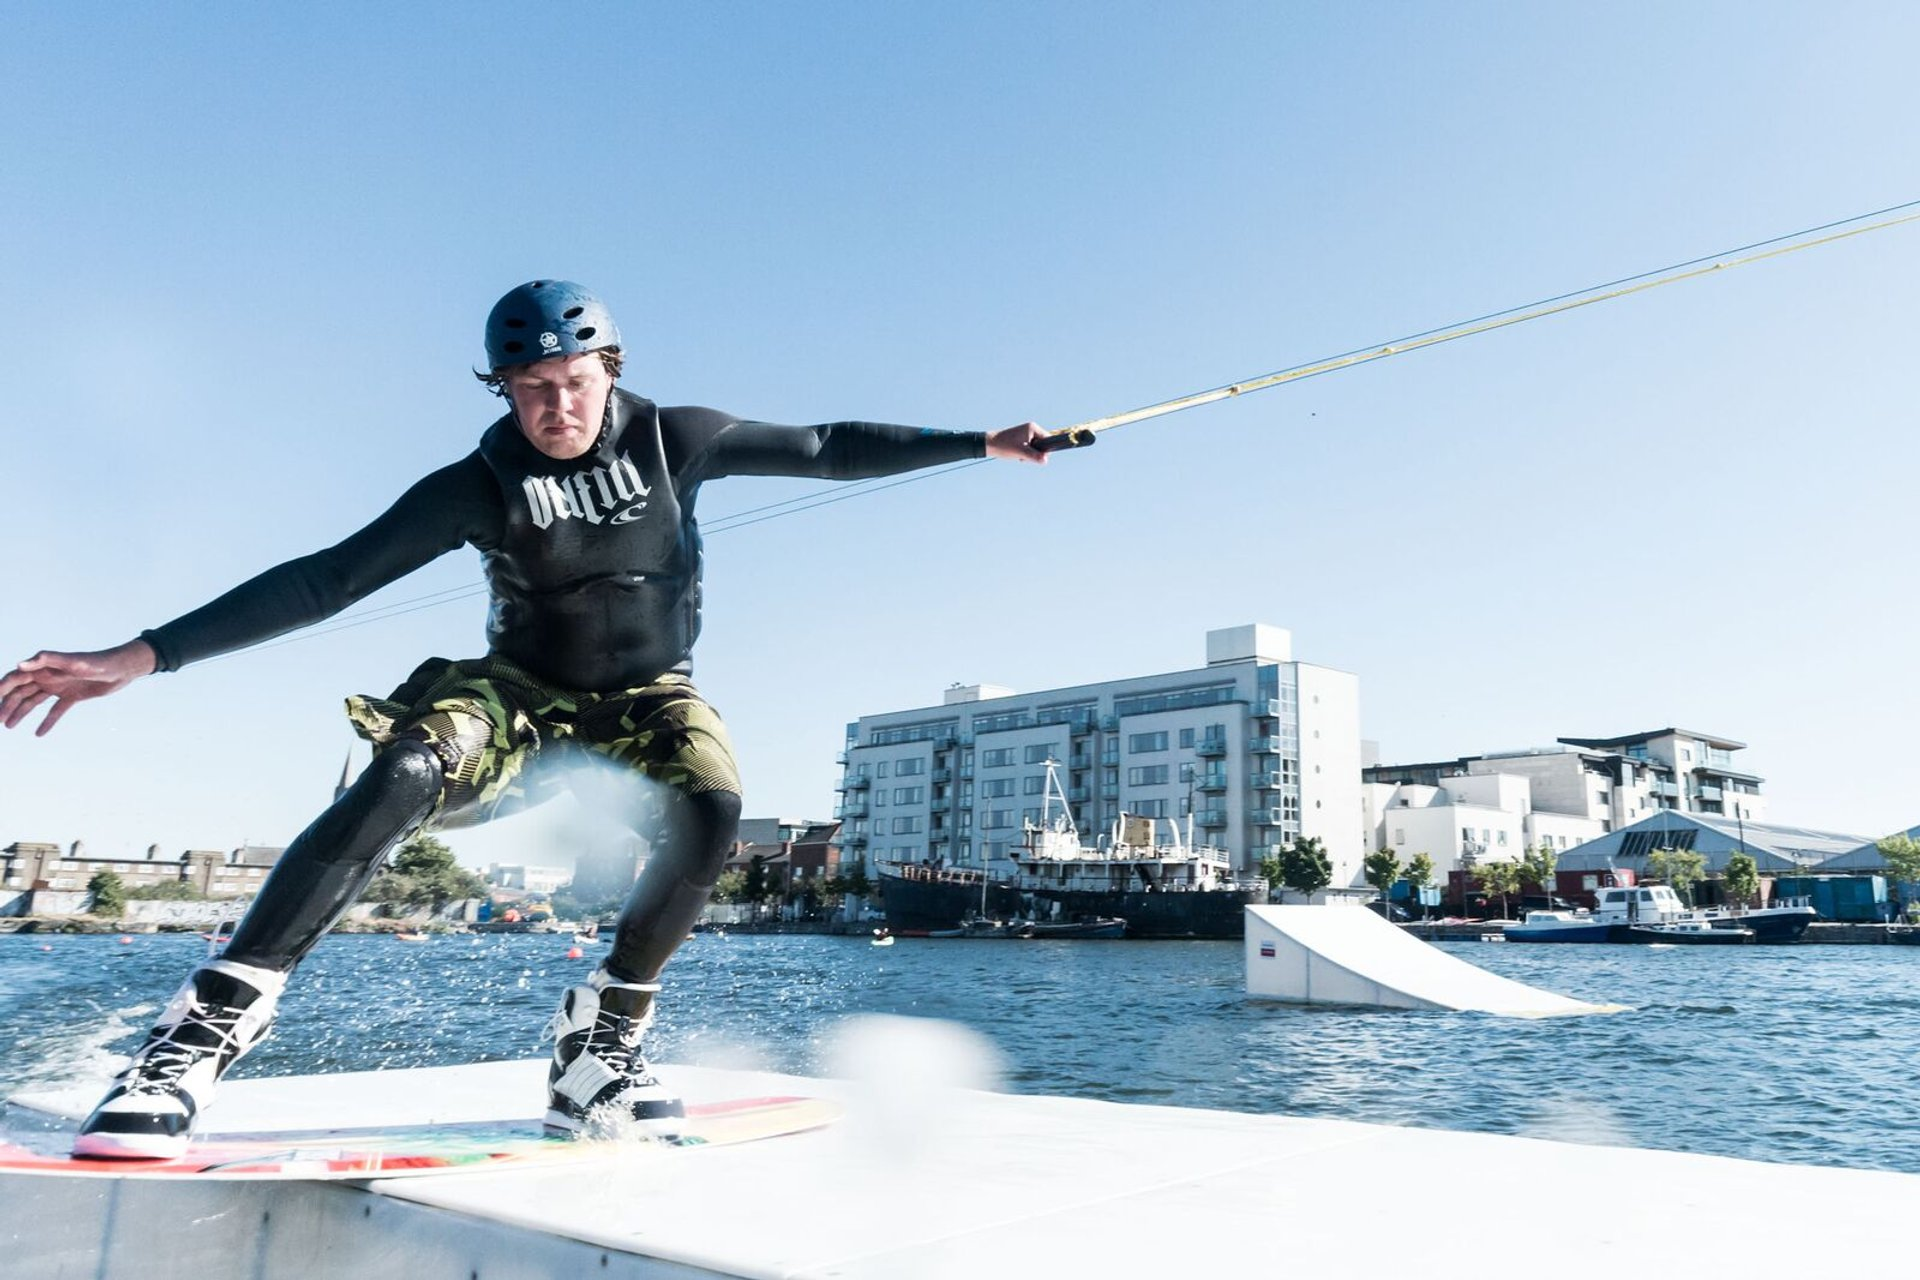 Best time for Wakedock in Dublin 2019